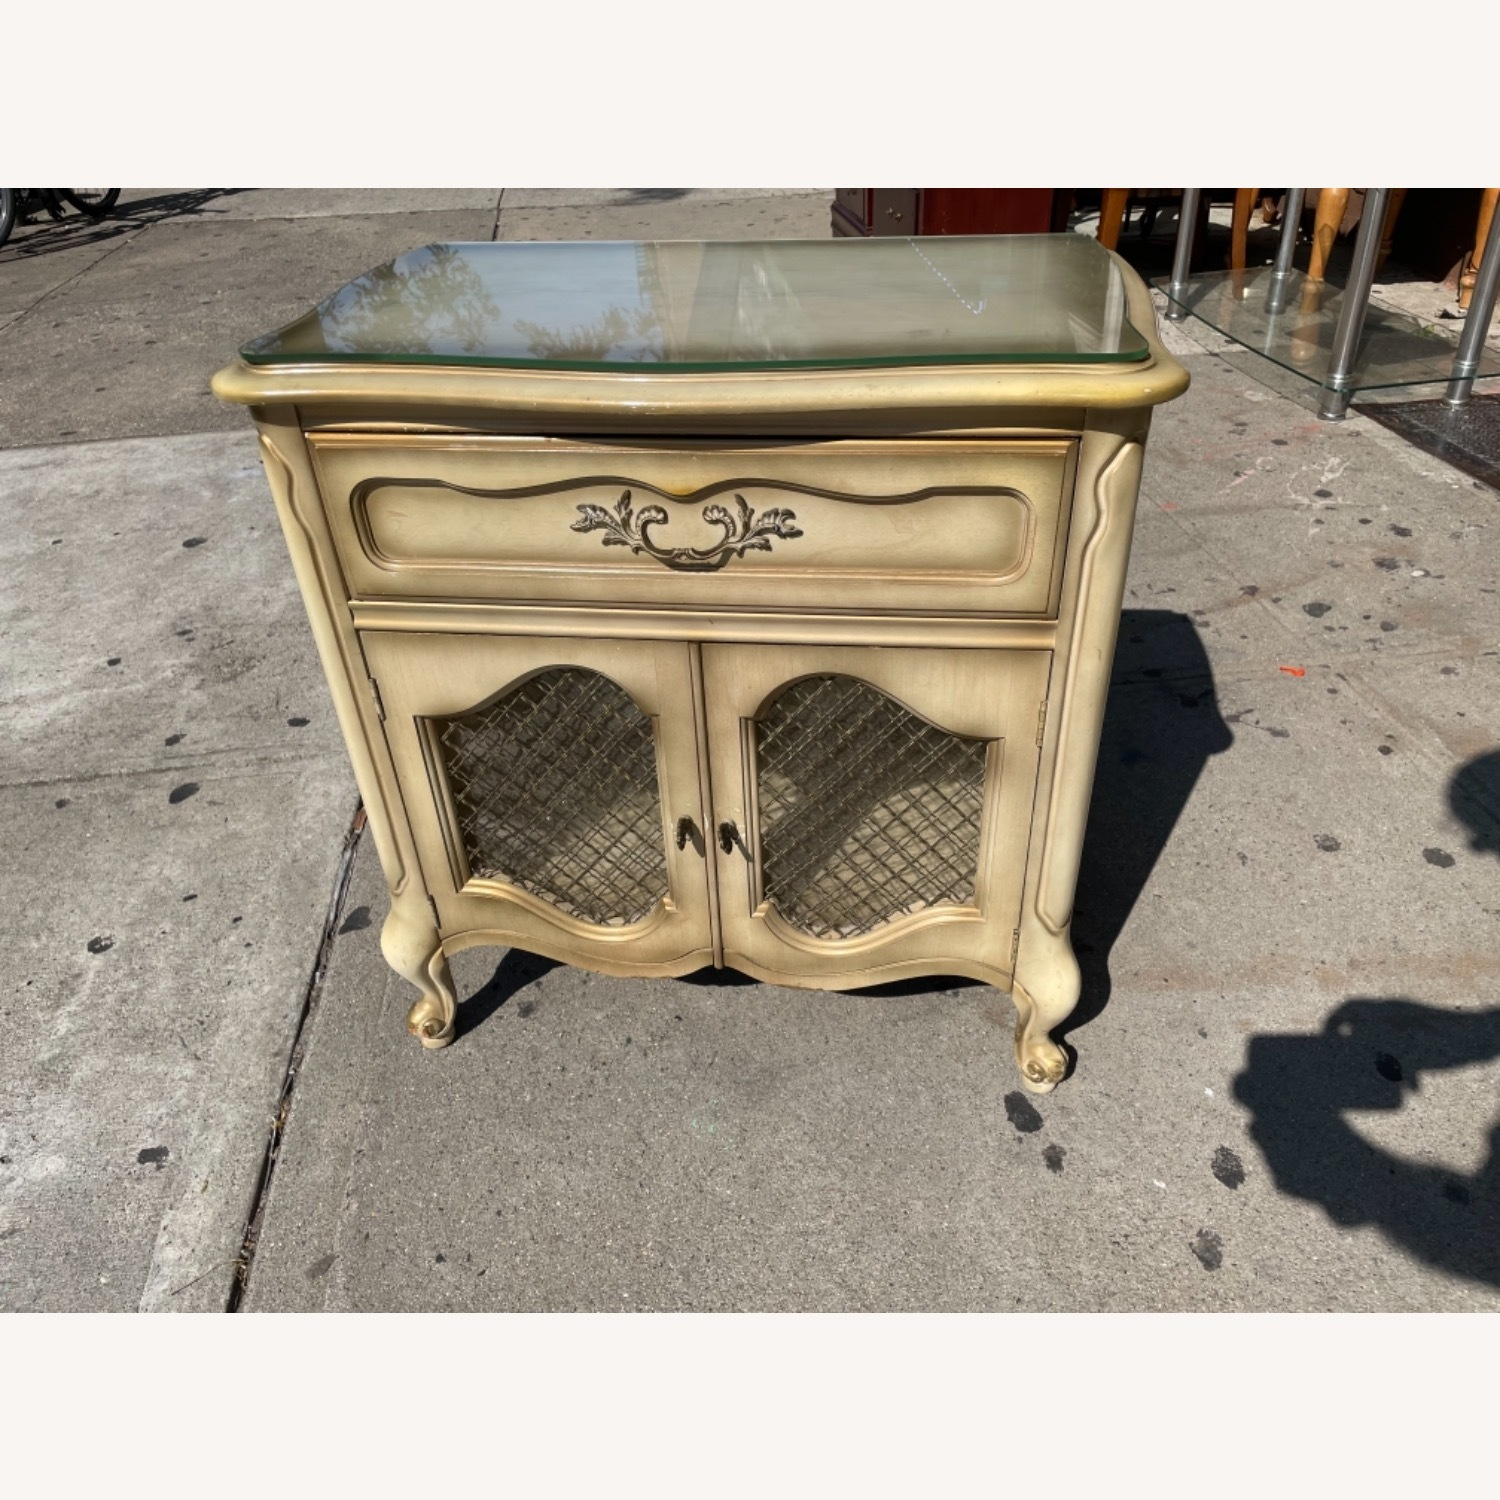 Basset 1970sFrench Style Nightstand w/GlassTop - image-19